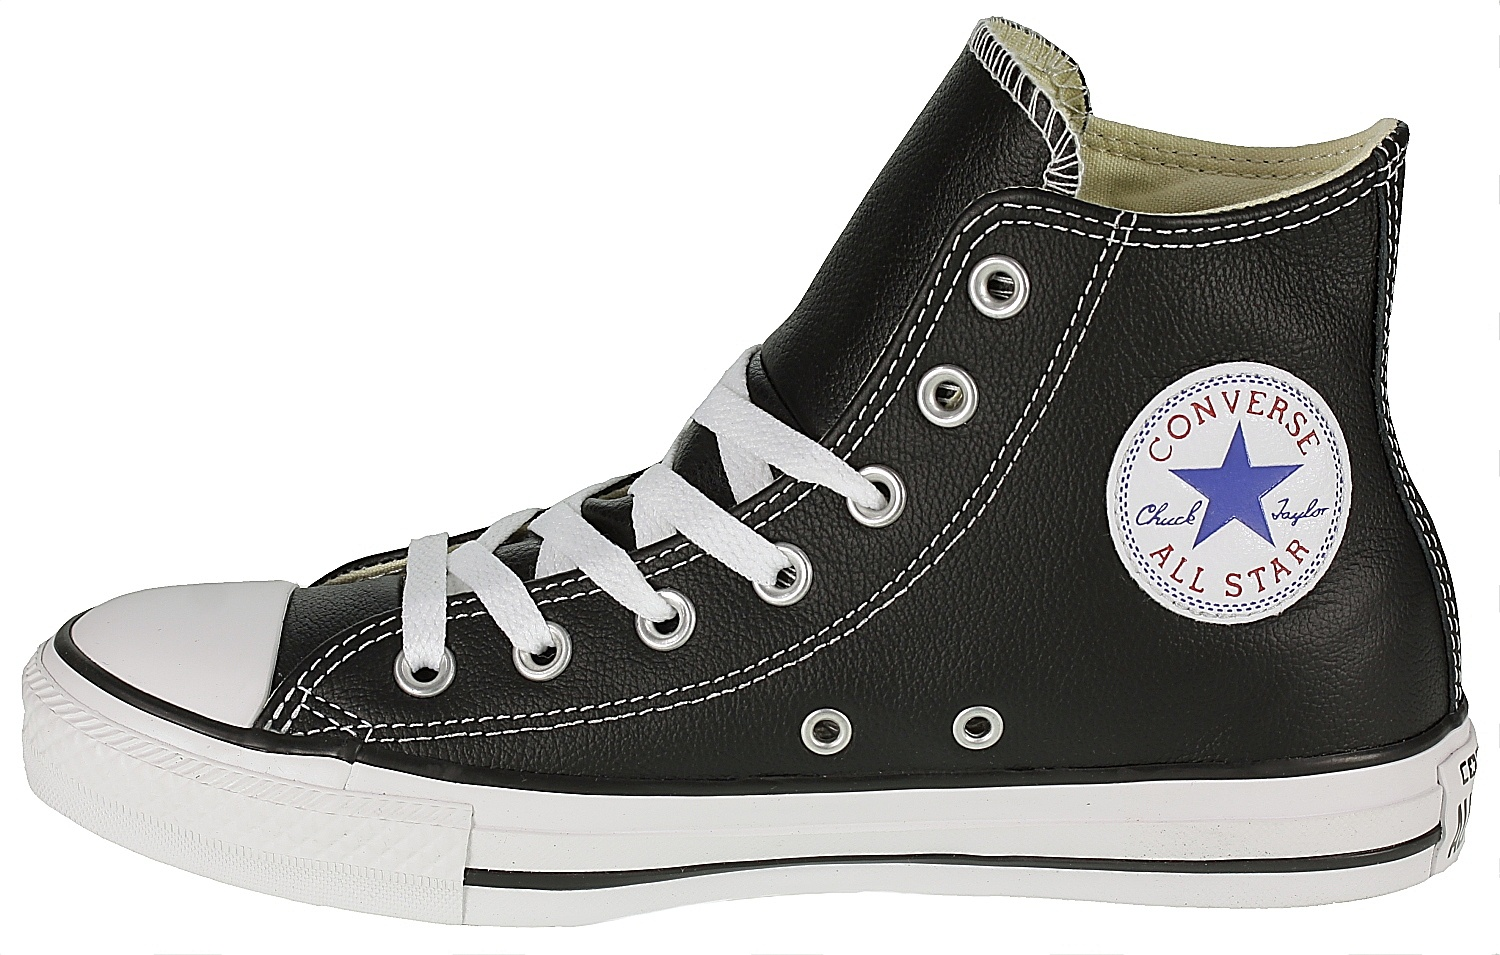 d97fbf0232d boty Converse Chuck Taylor All Star Leather Hi - 132170 Black ...